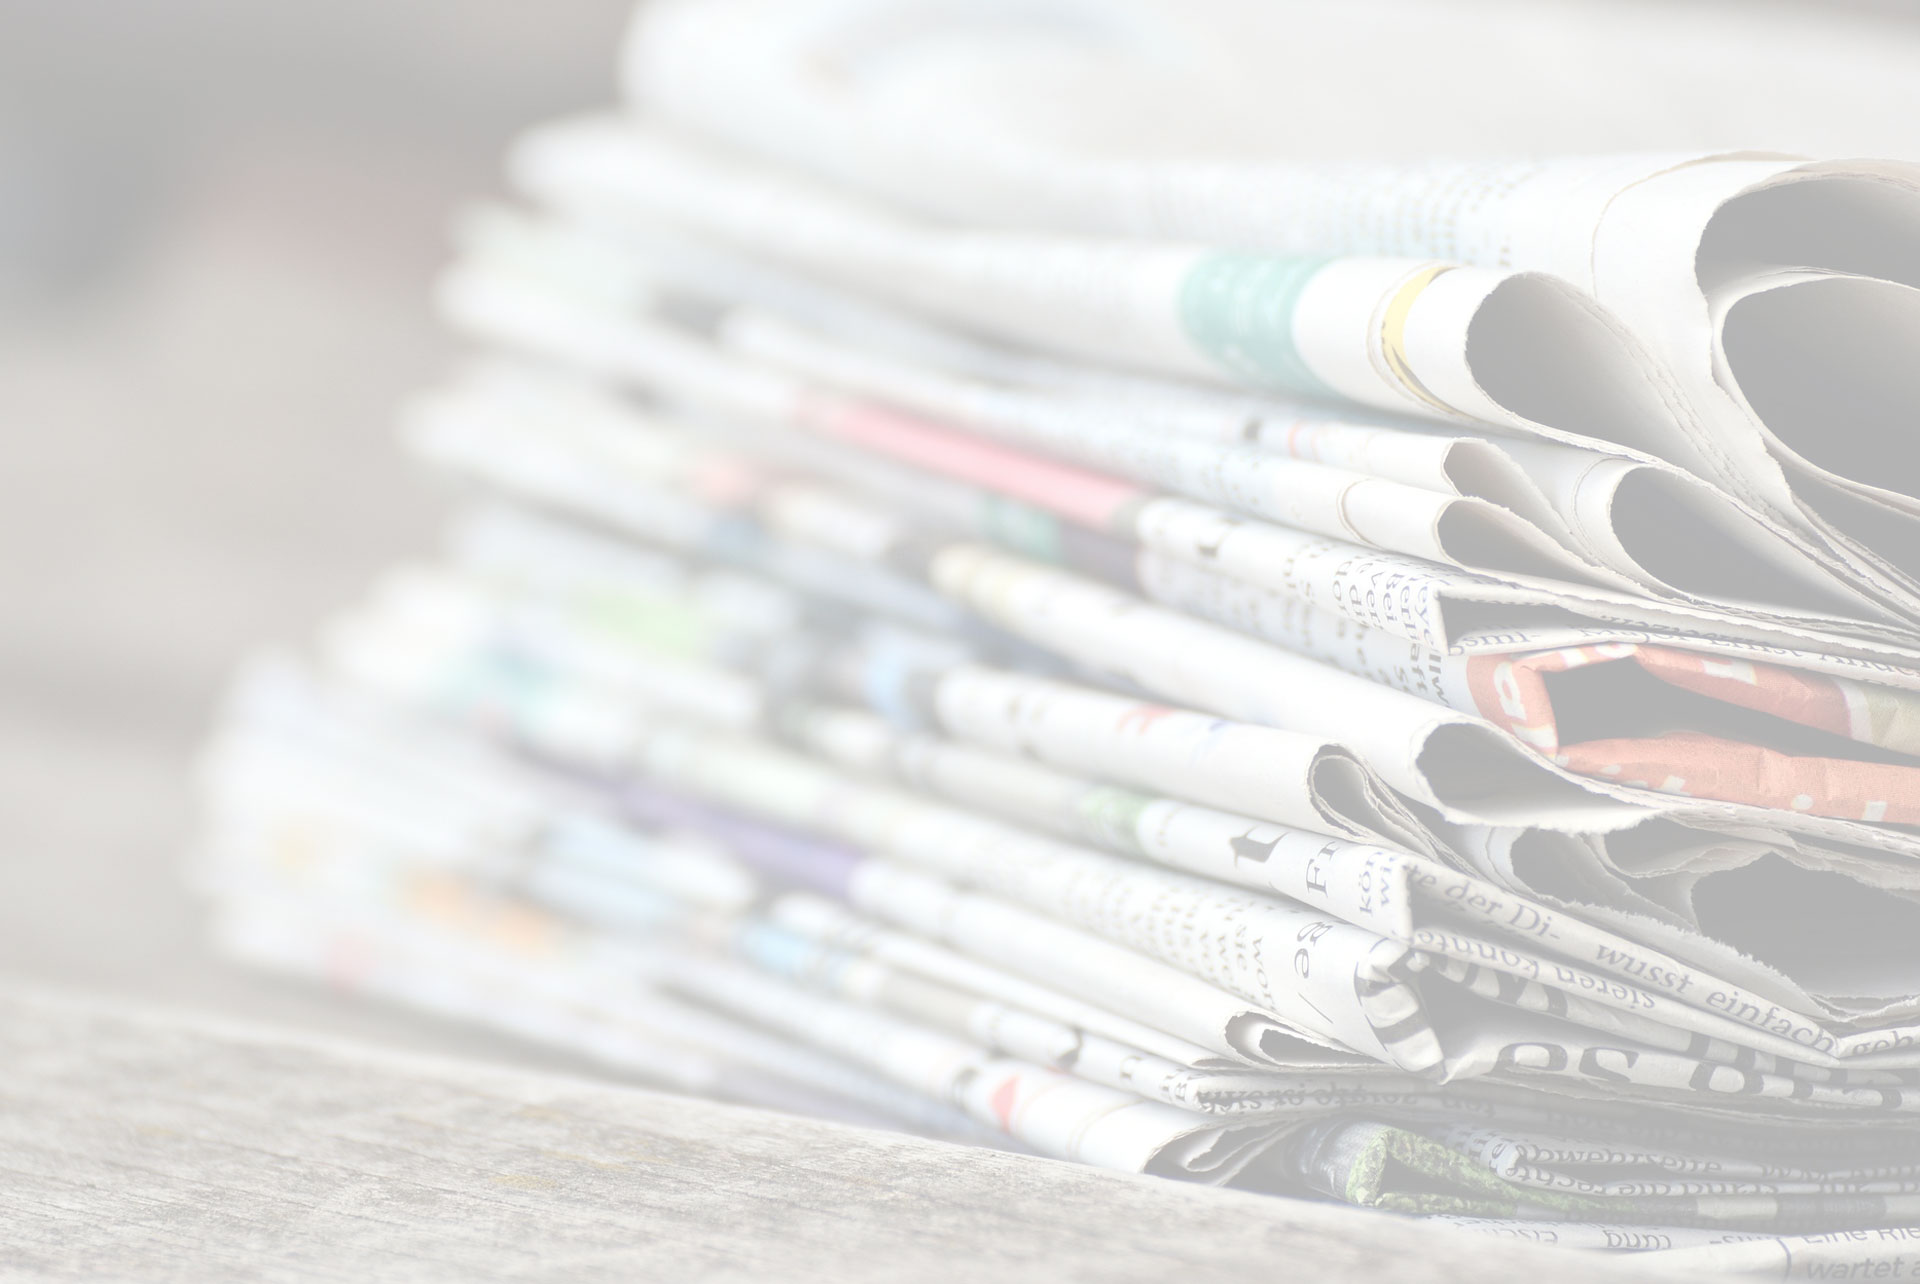 Donald Trump e Theresa May